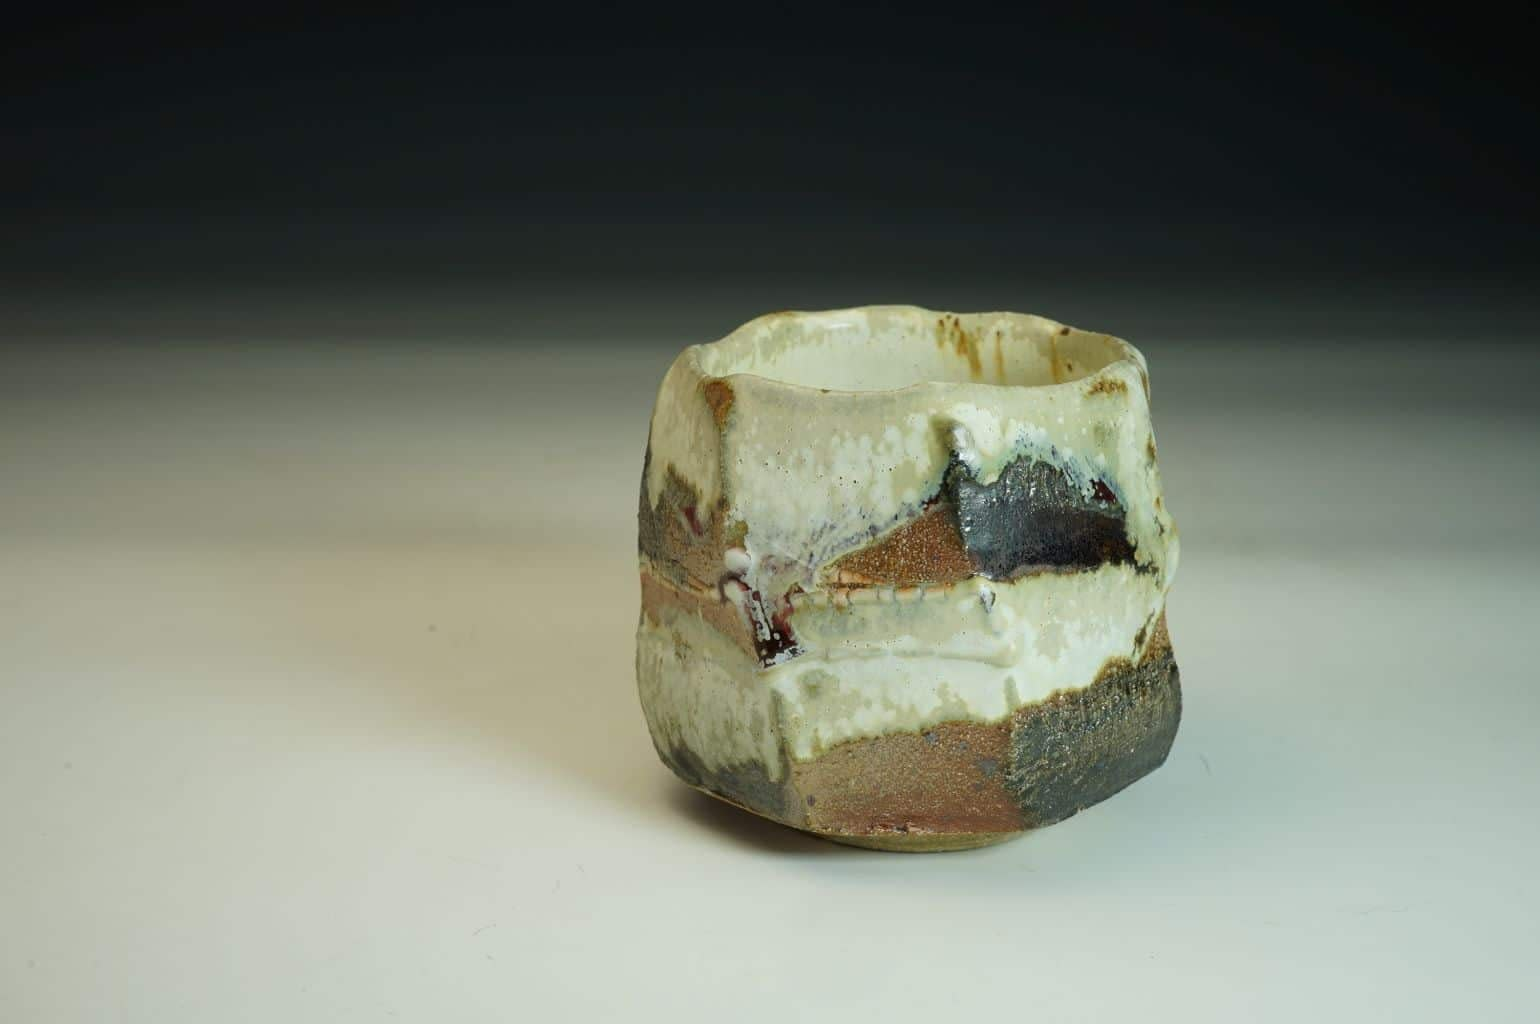 Wood-fired with salt Chawan tea bowl in stoneware.